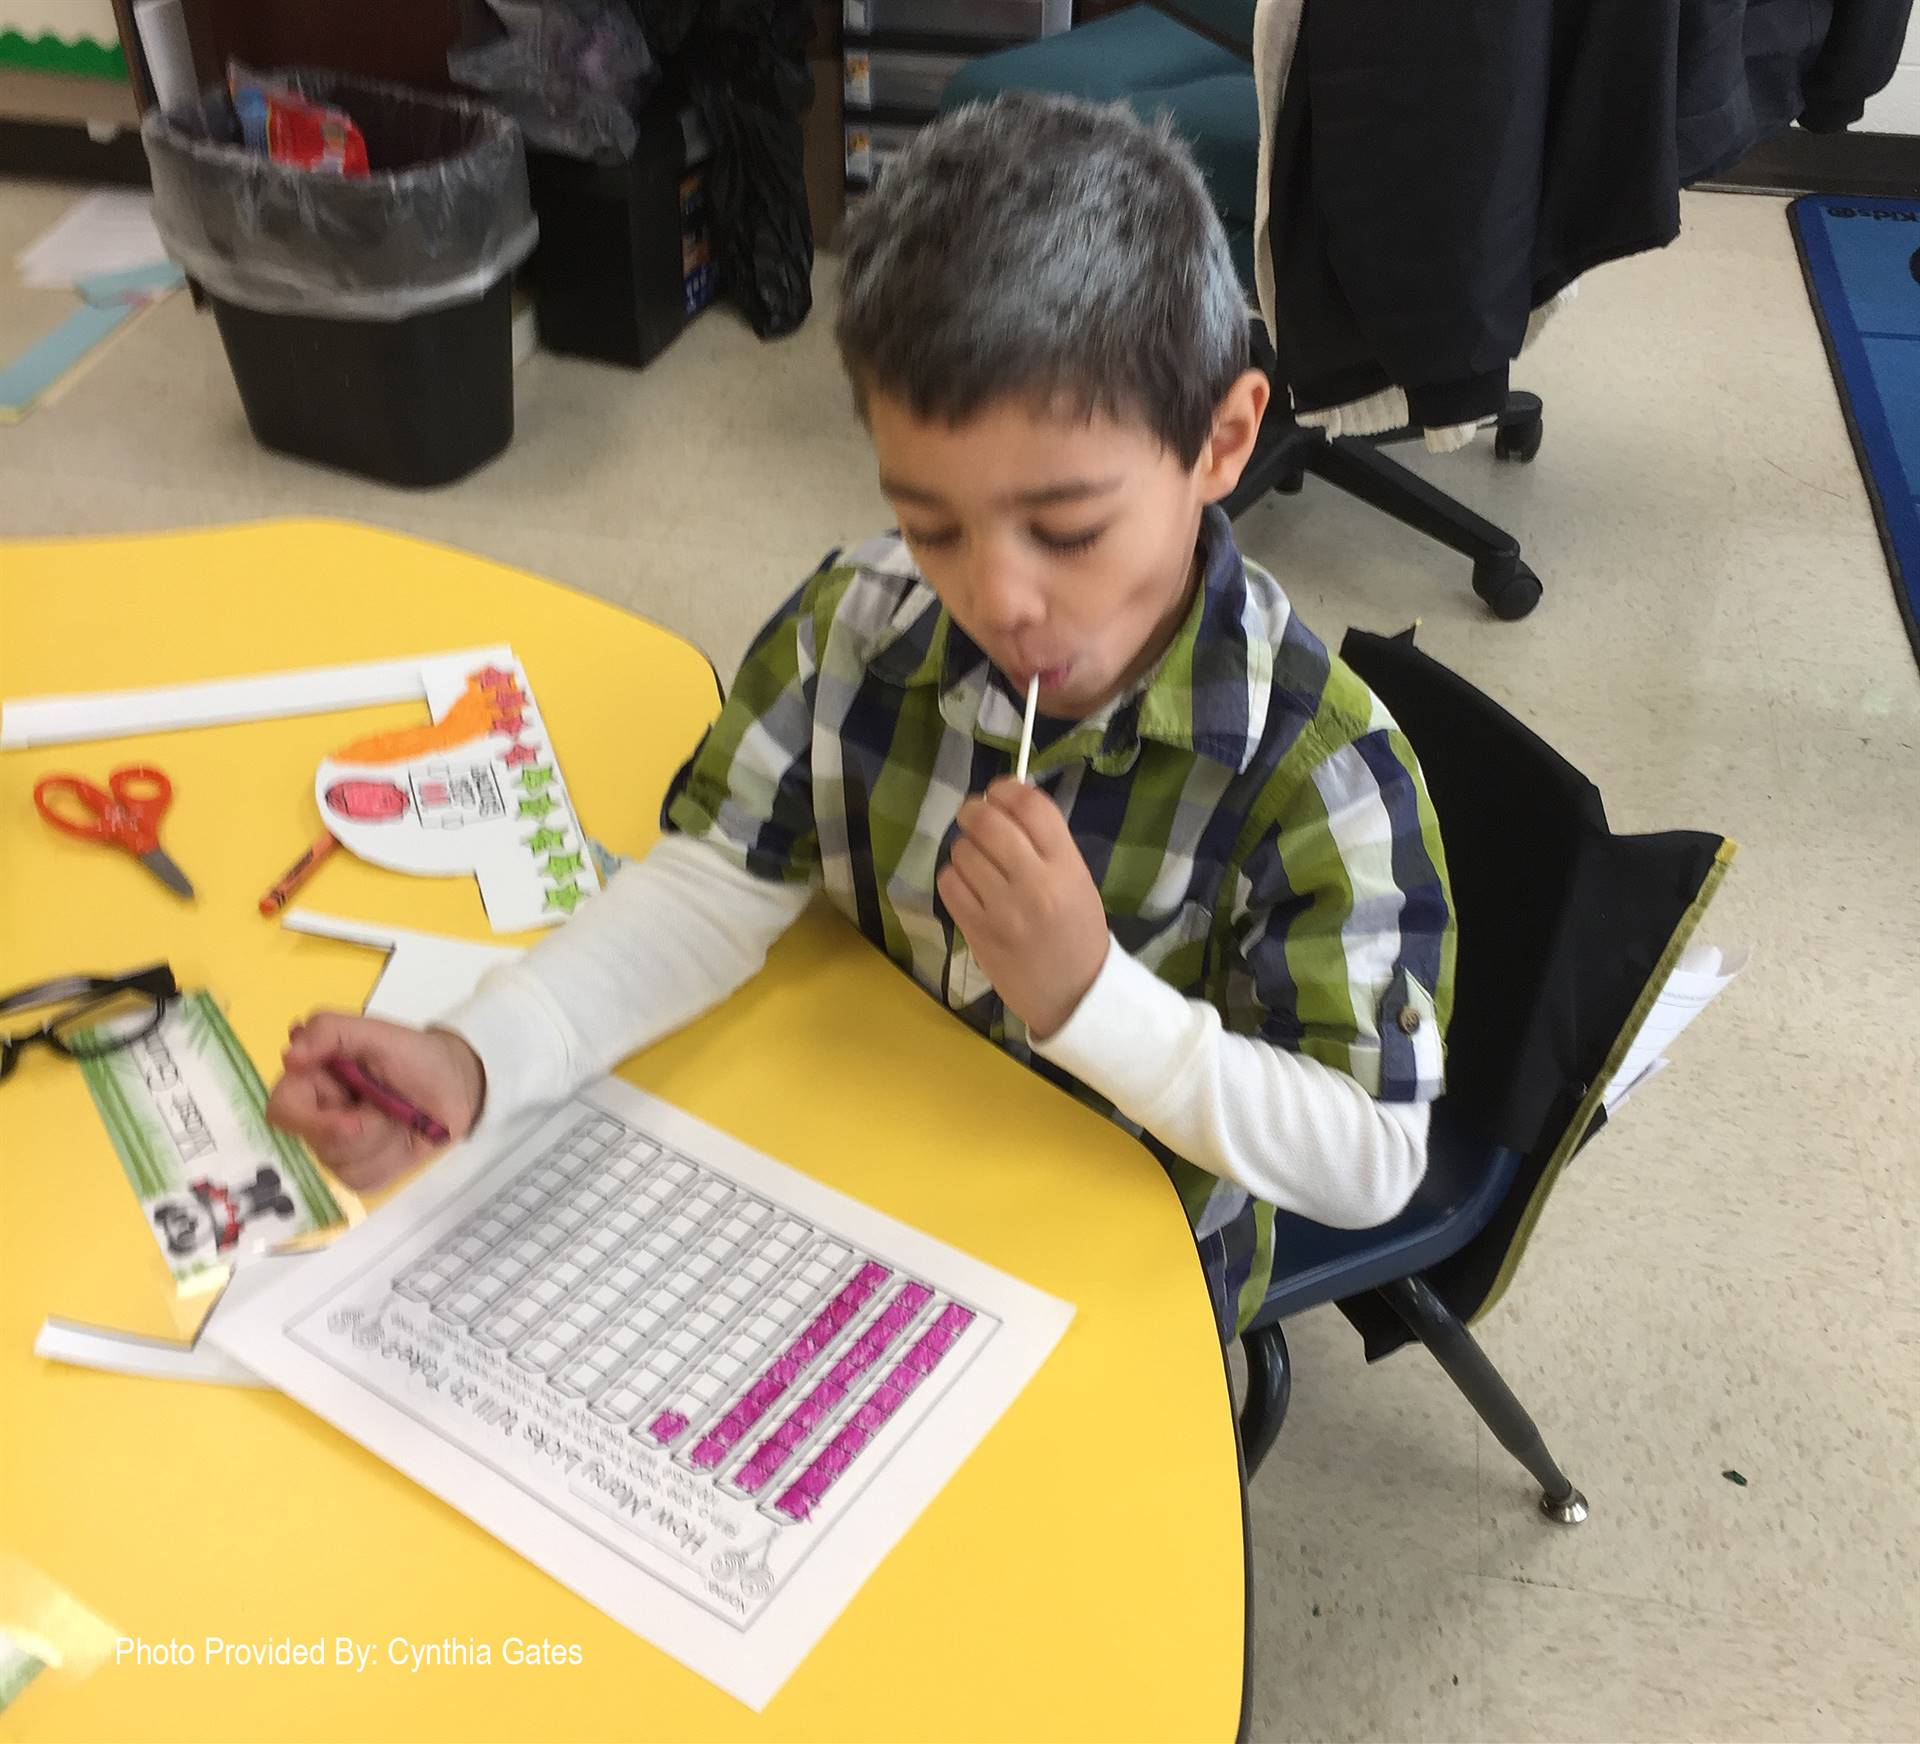 student participating in 100 days of school activity